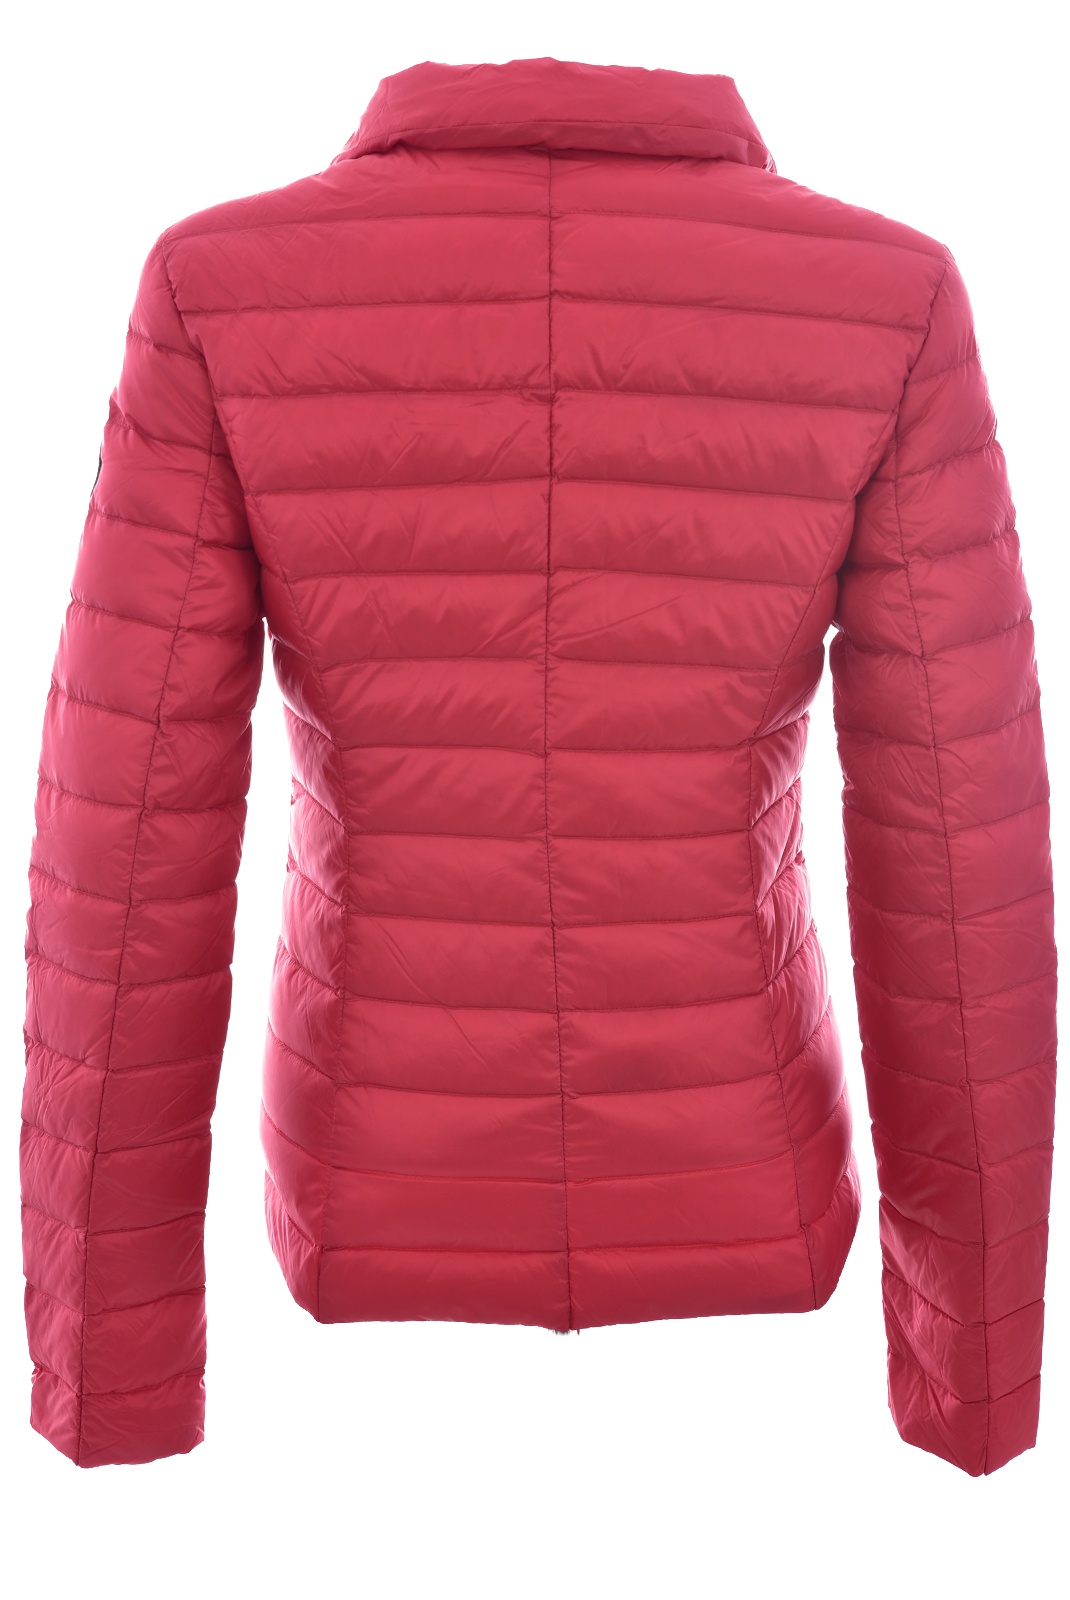 Blouson  Just over the top ISA 417 GRENADINE